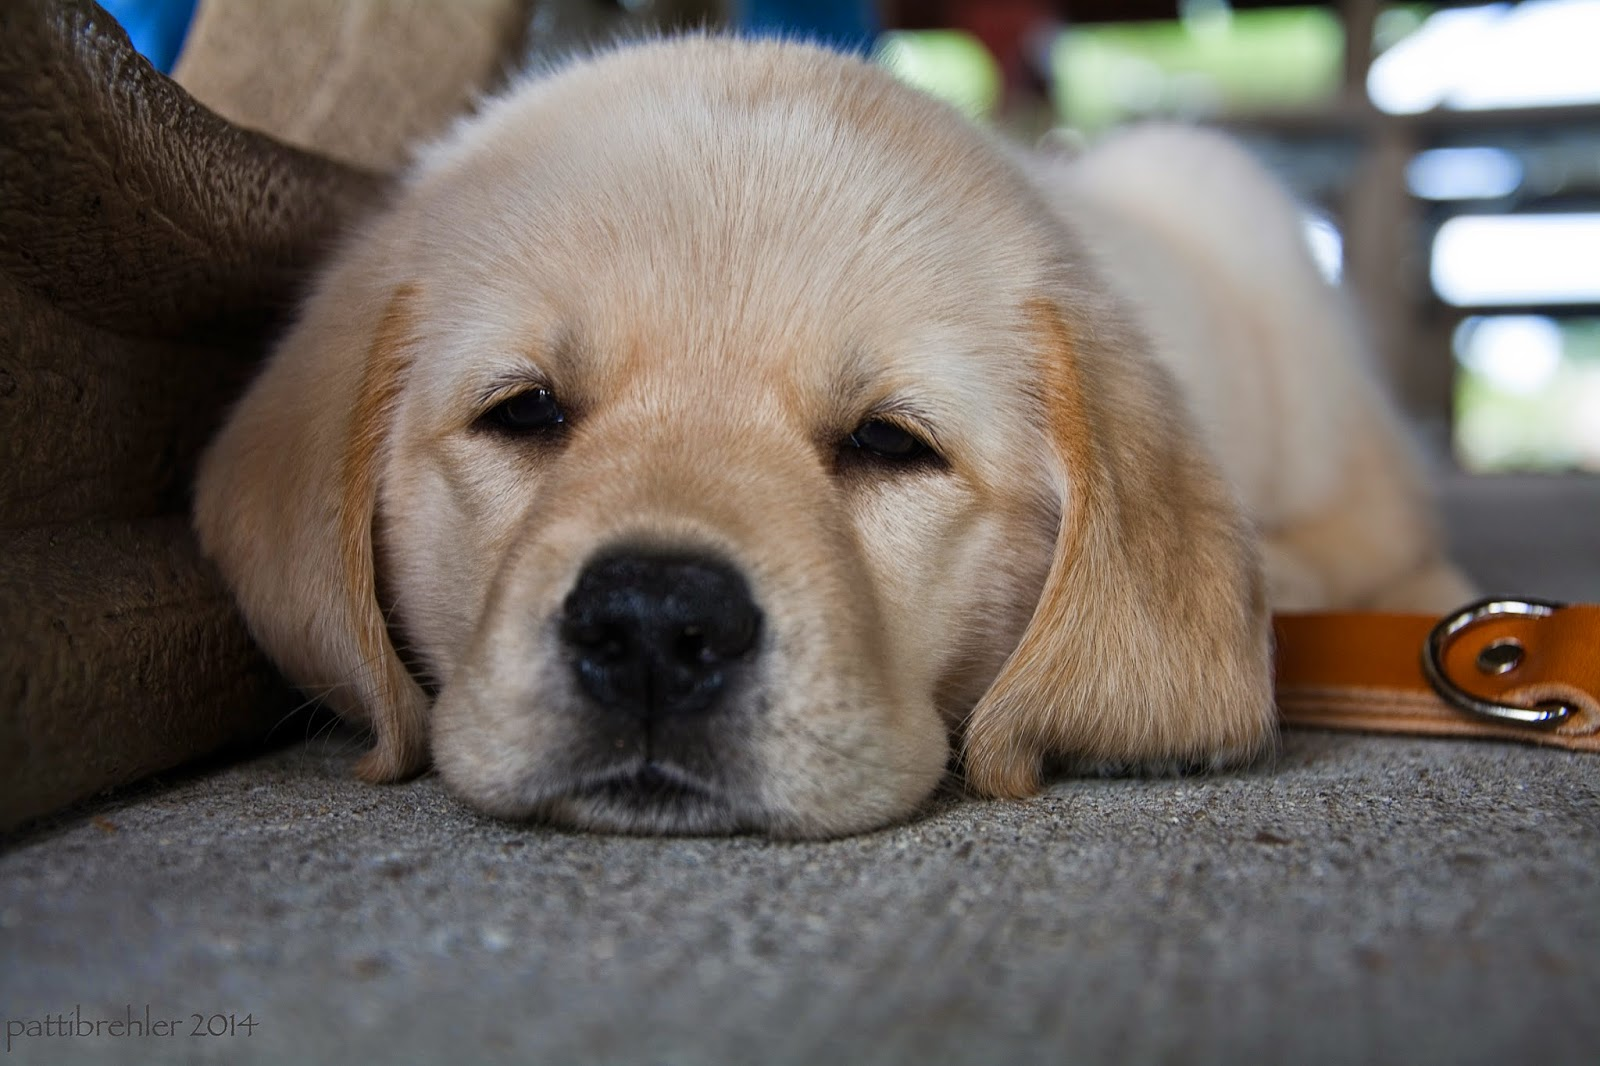 A close floor-level shot of a small yellow lab/golden mix puppy lying on the cement. The puppy's chin is resting on the cement and his eyes are sleepy. His ears are touching the cement.